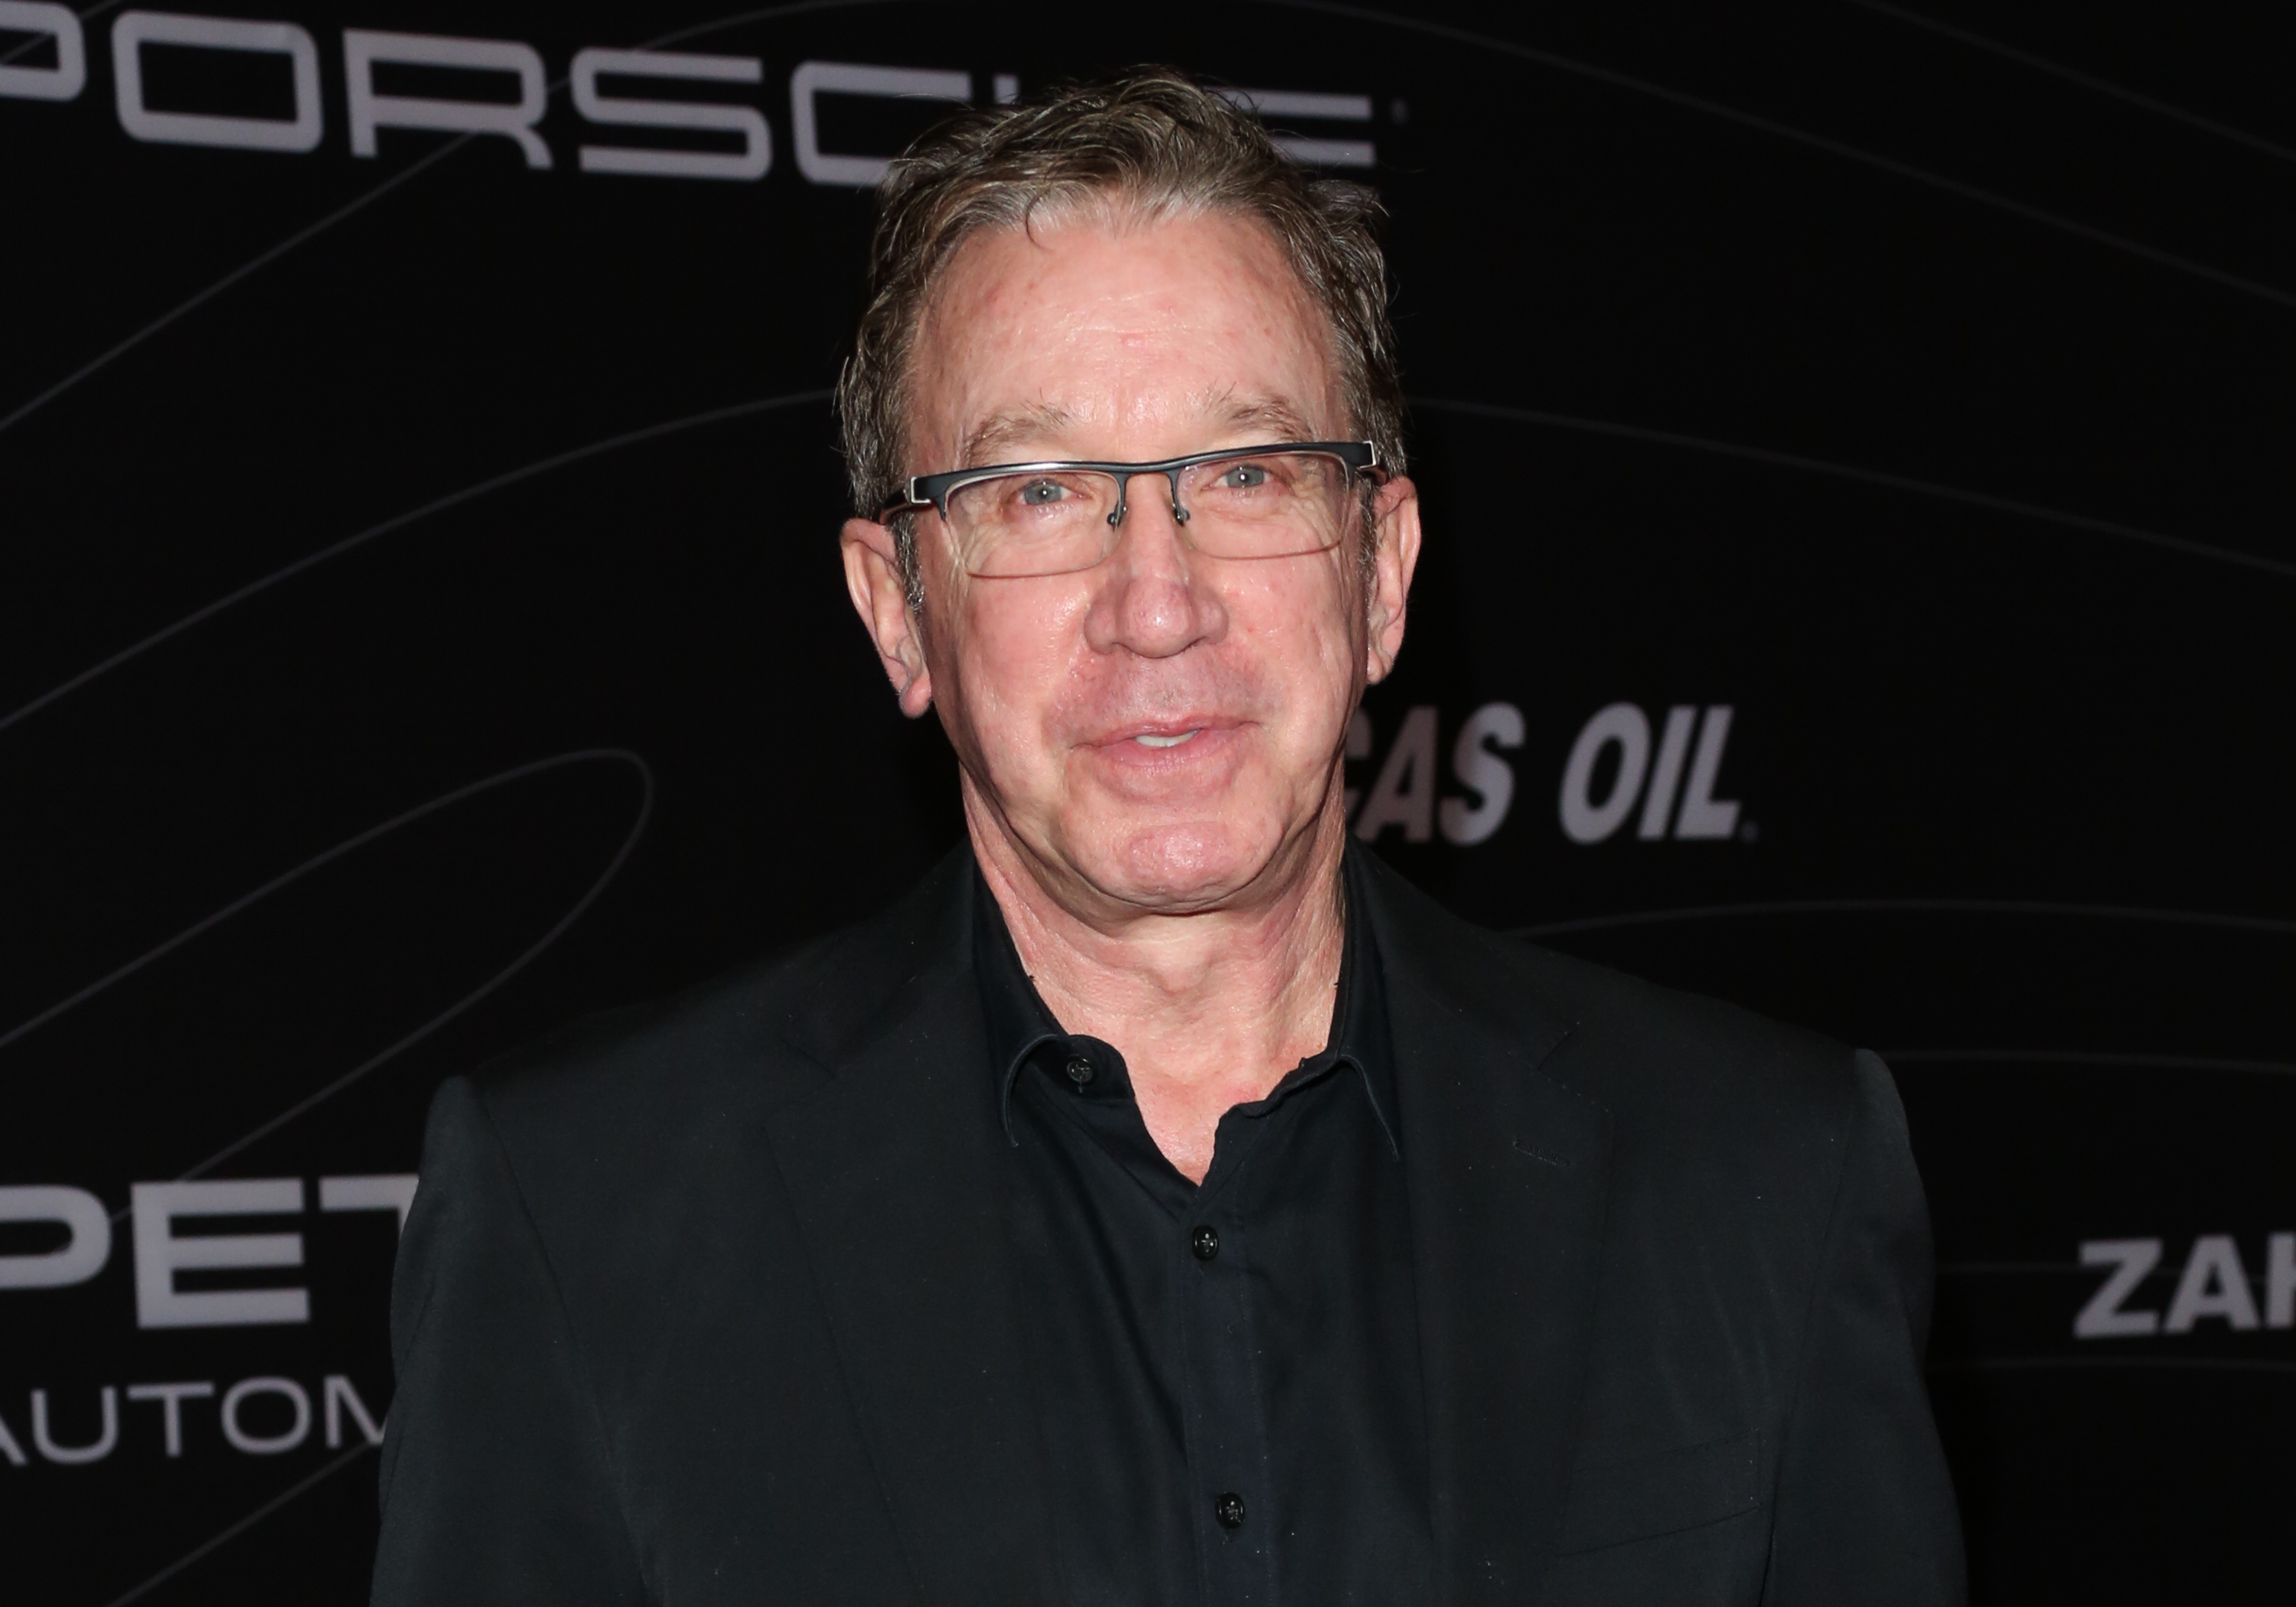 Tim Allen Opens Up About Life I M Extremely Grateful For Where I Am Today Here are some facts about her https www closerweekly com posts tim allen life 128954